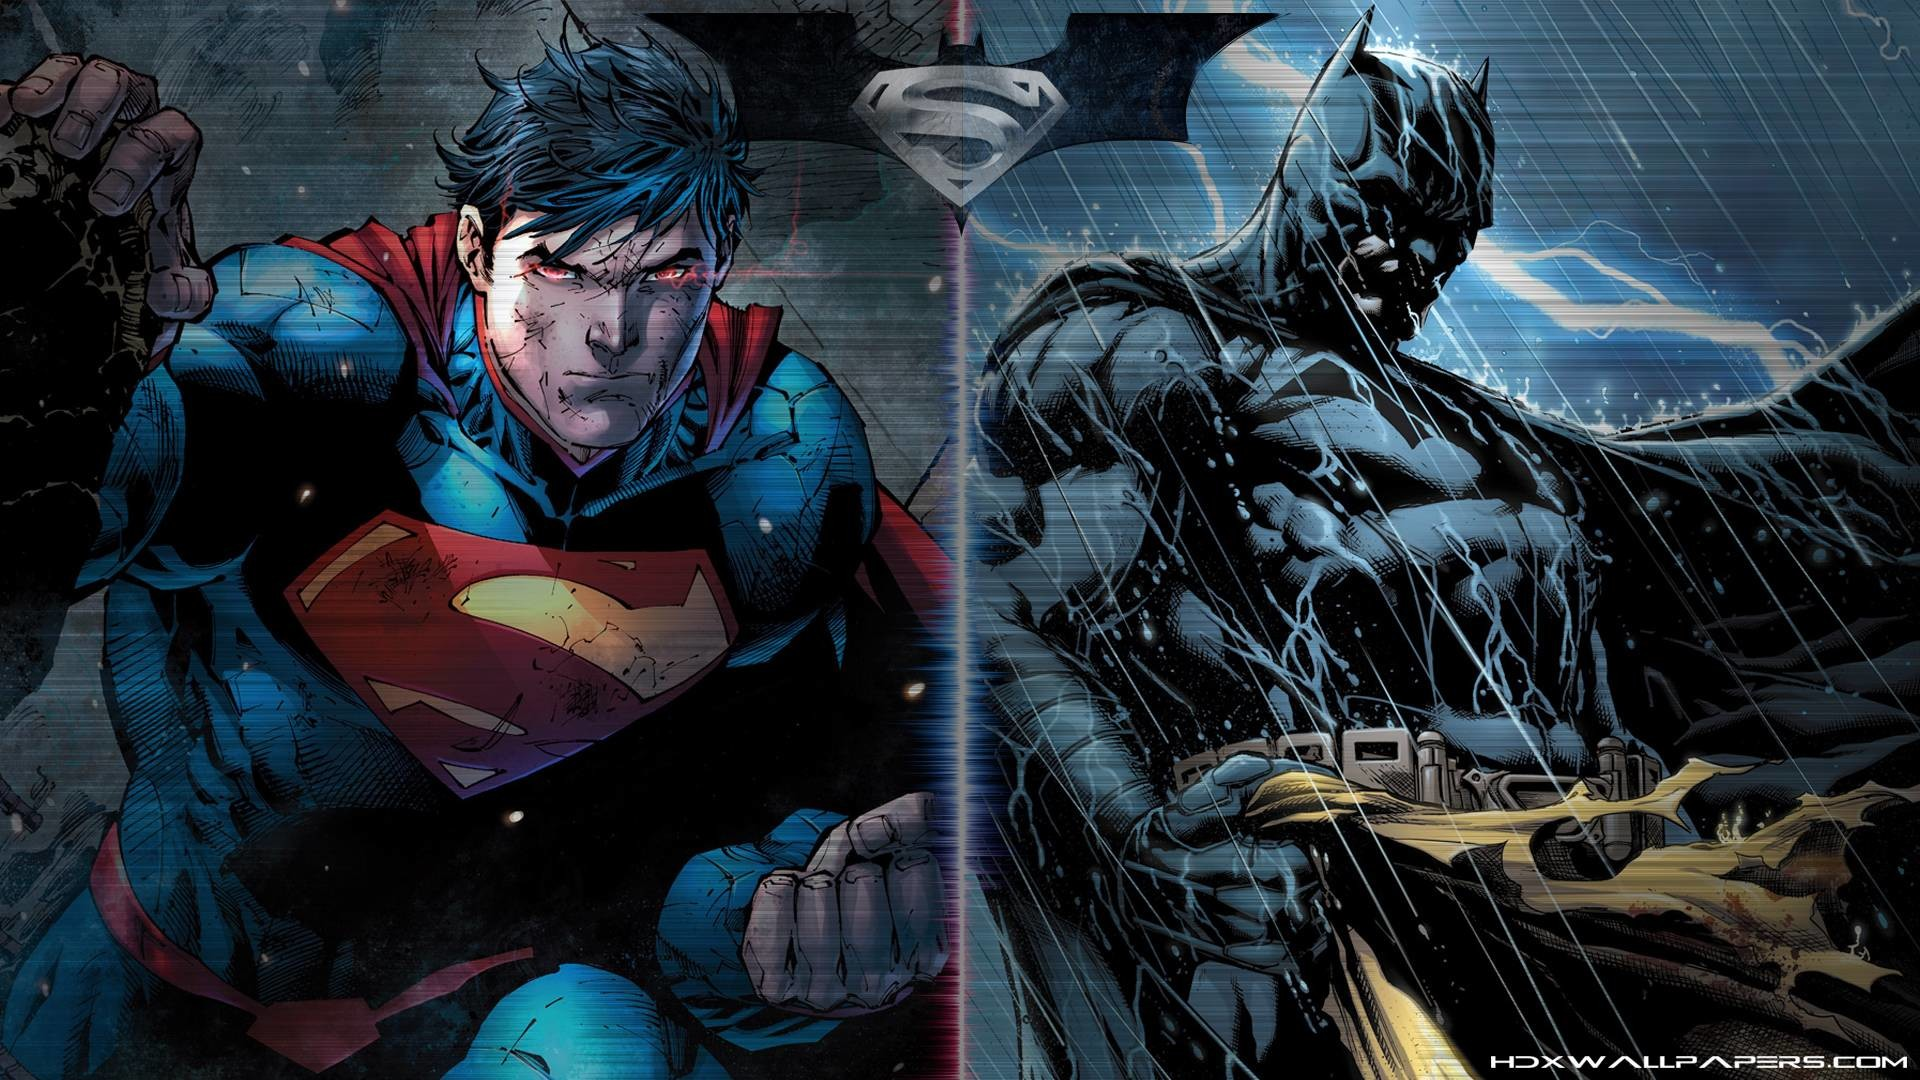 1920x1080 Wallpapers For > Batman Vs Superman 2015 Wallpaper